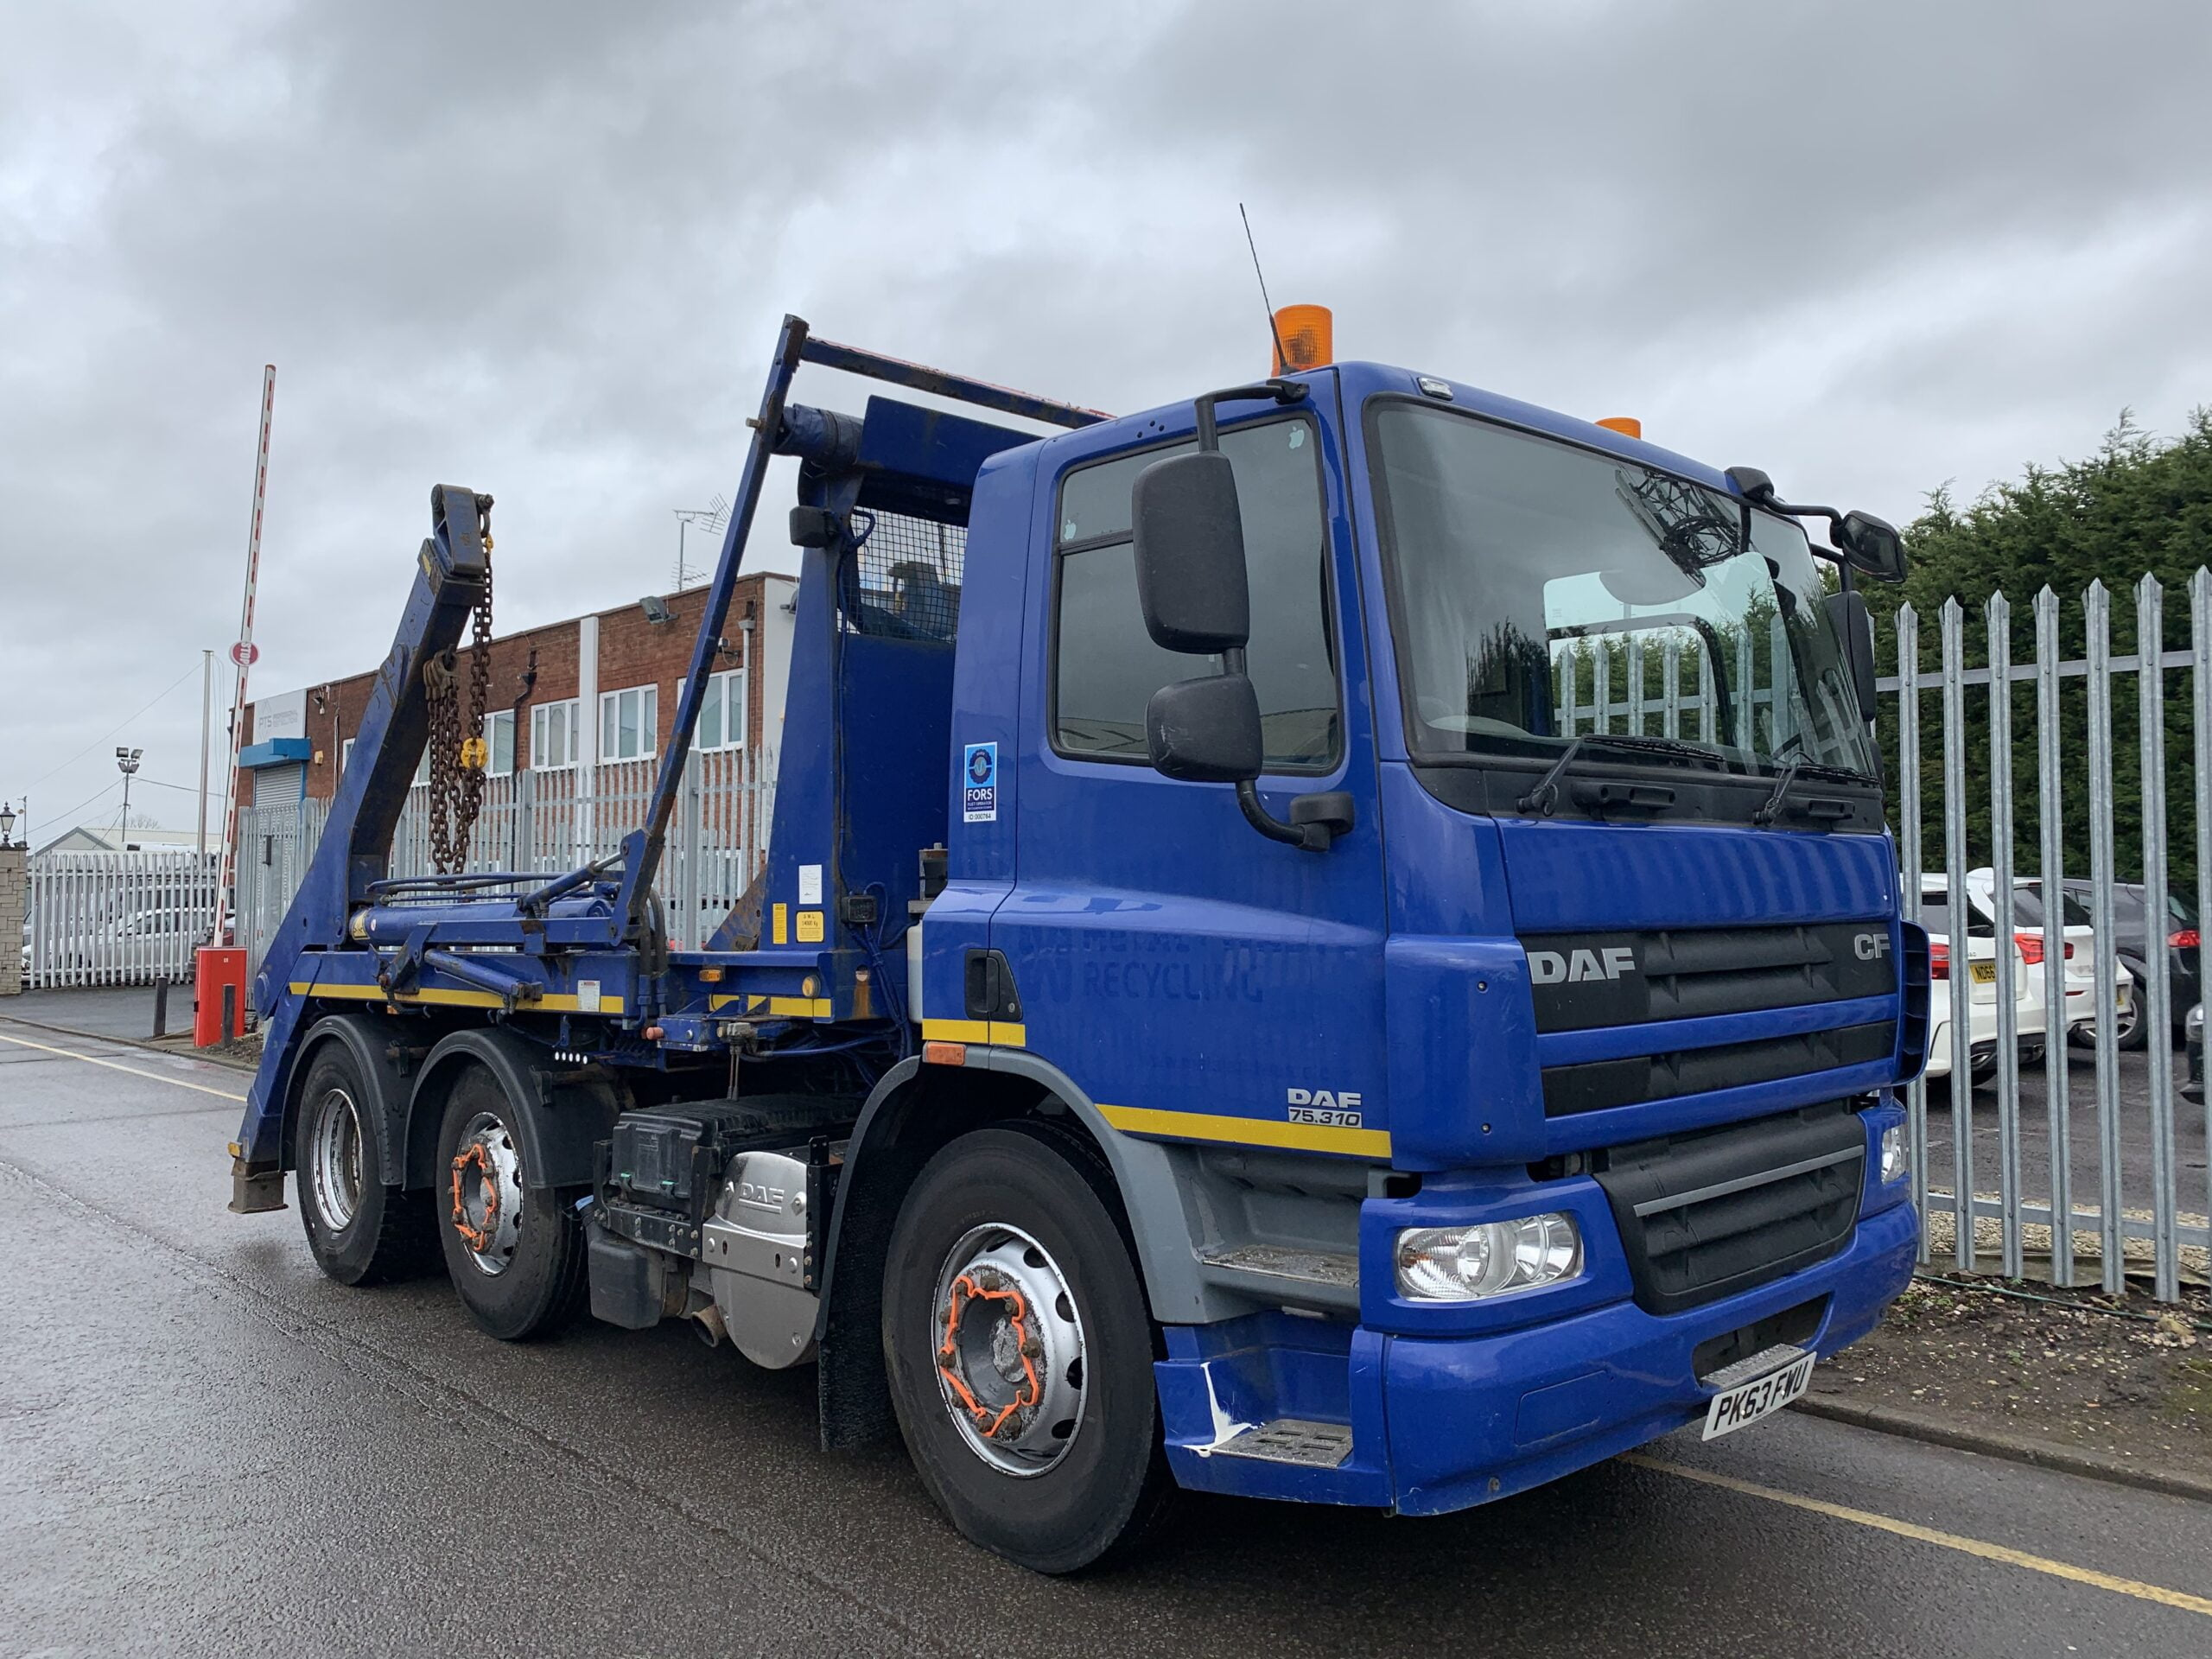 2013 (63) DAF CF 75.310 Skiploader, AJK Hydrolift Gear, 26 Tonne, Euro 5, 310bhp, Day Cab, Automatic Gearbox, Camera System, Onboard Weigher, Storage Box Fitted, Steering Wheel Controls, Choice & Warranty Available.